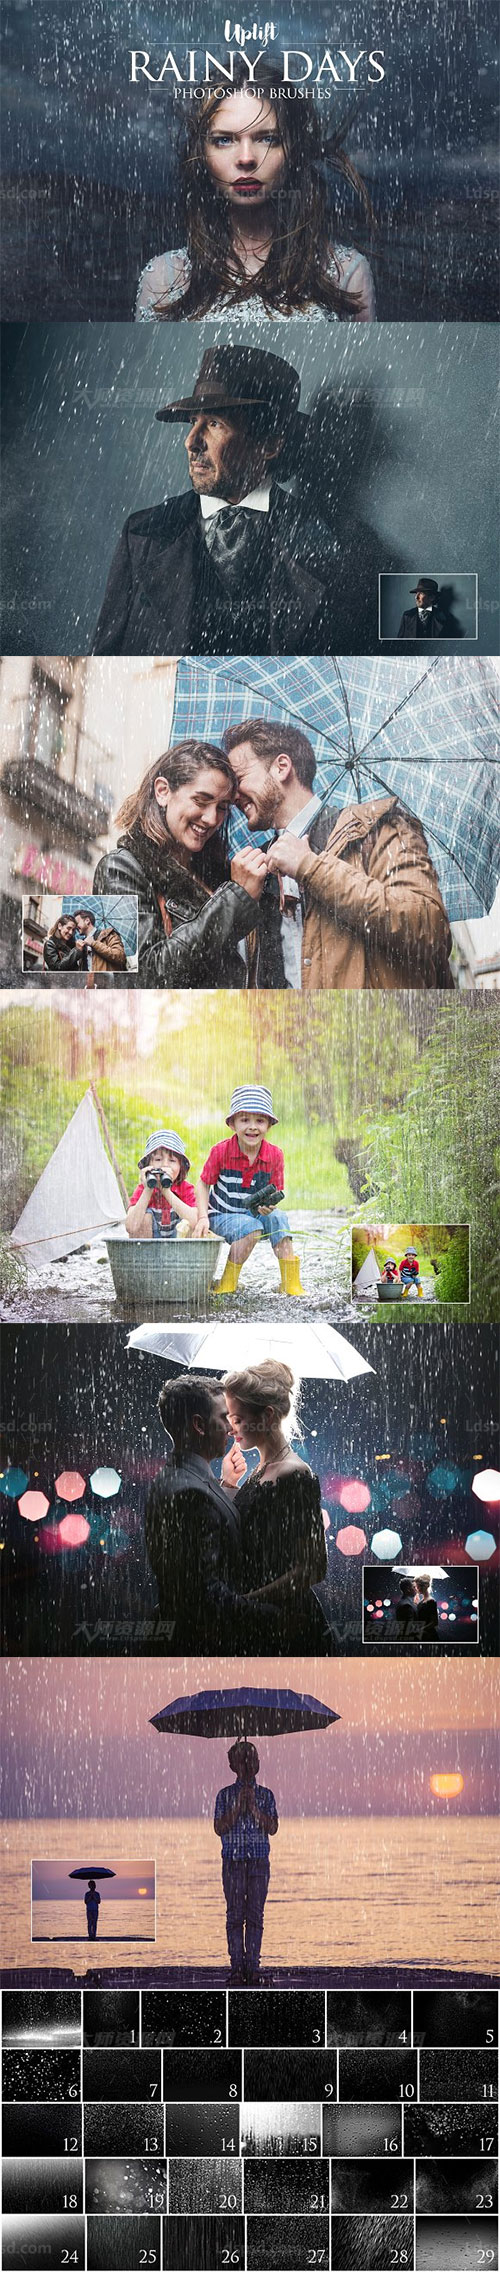 NEW! 30 Rain Brushes for Photoshop,极品PS笔刷-30支高清的下雨效果